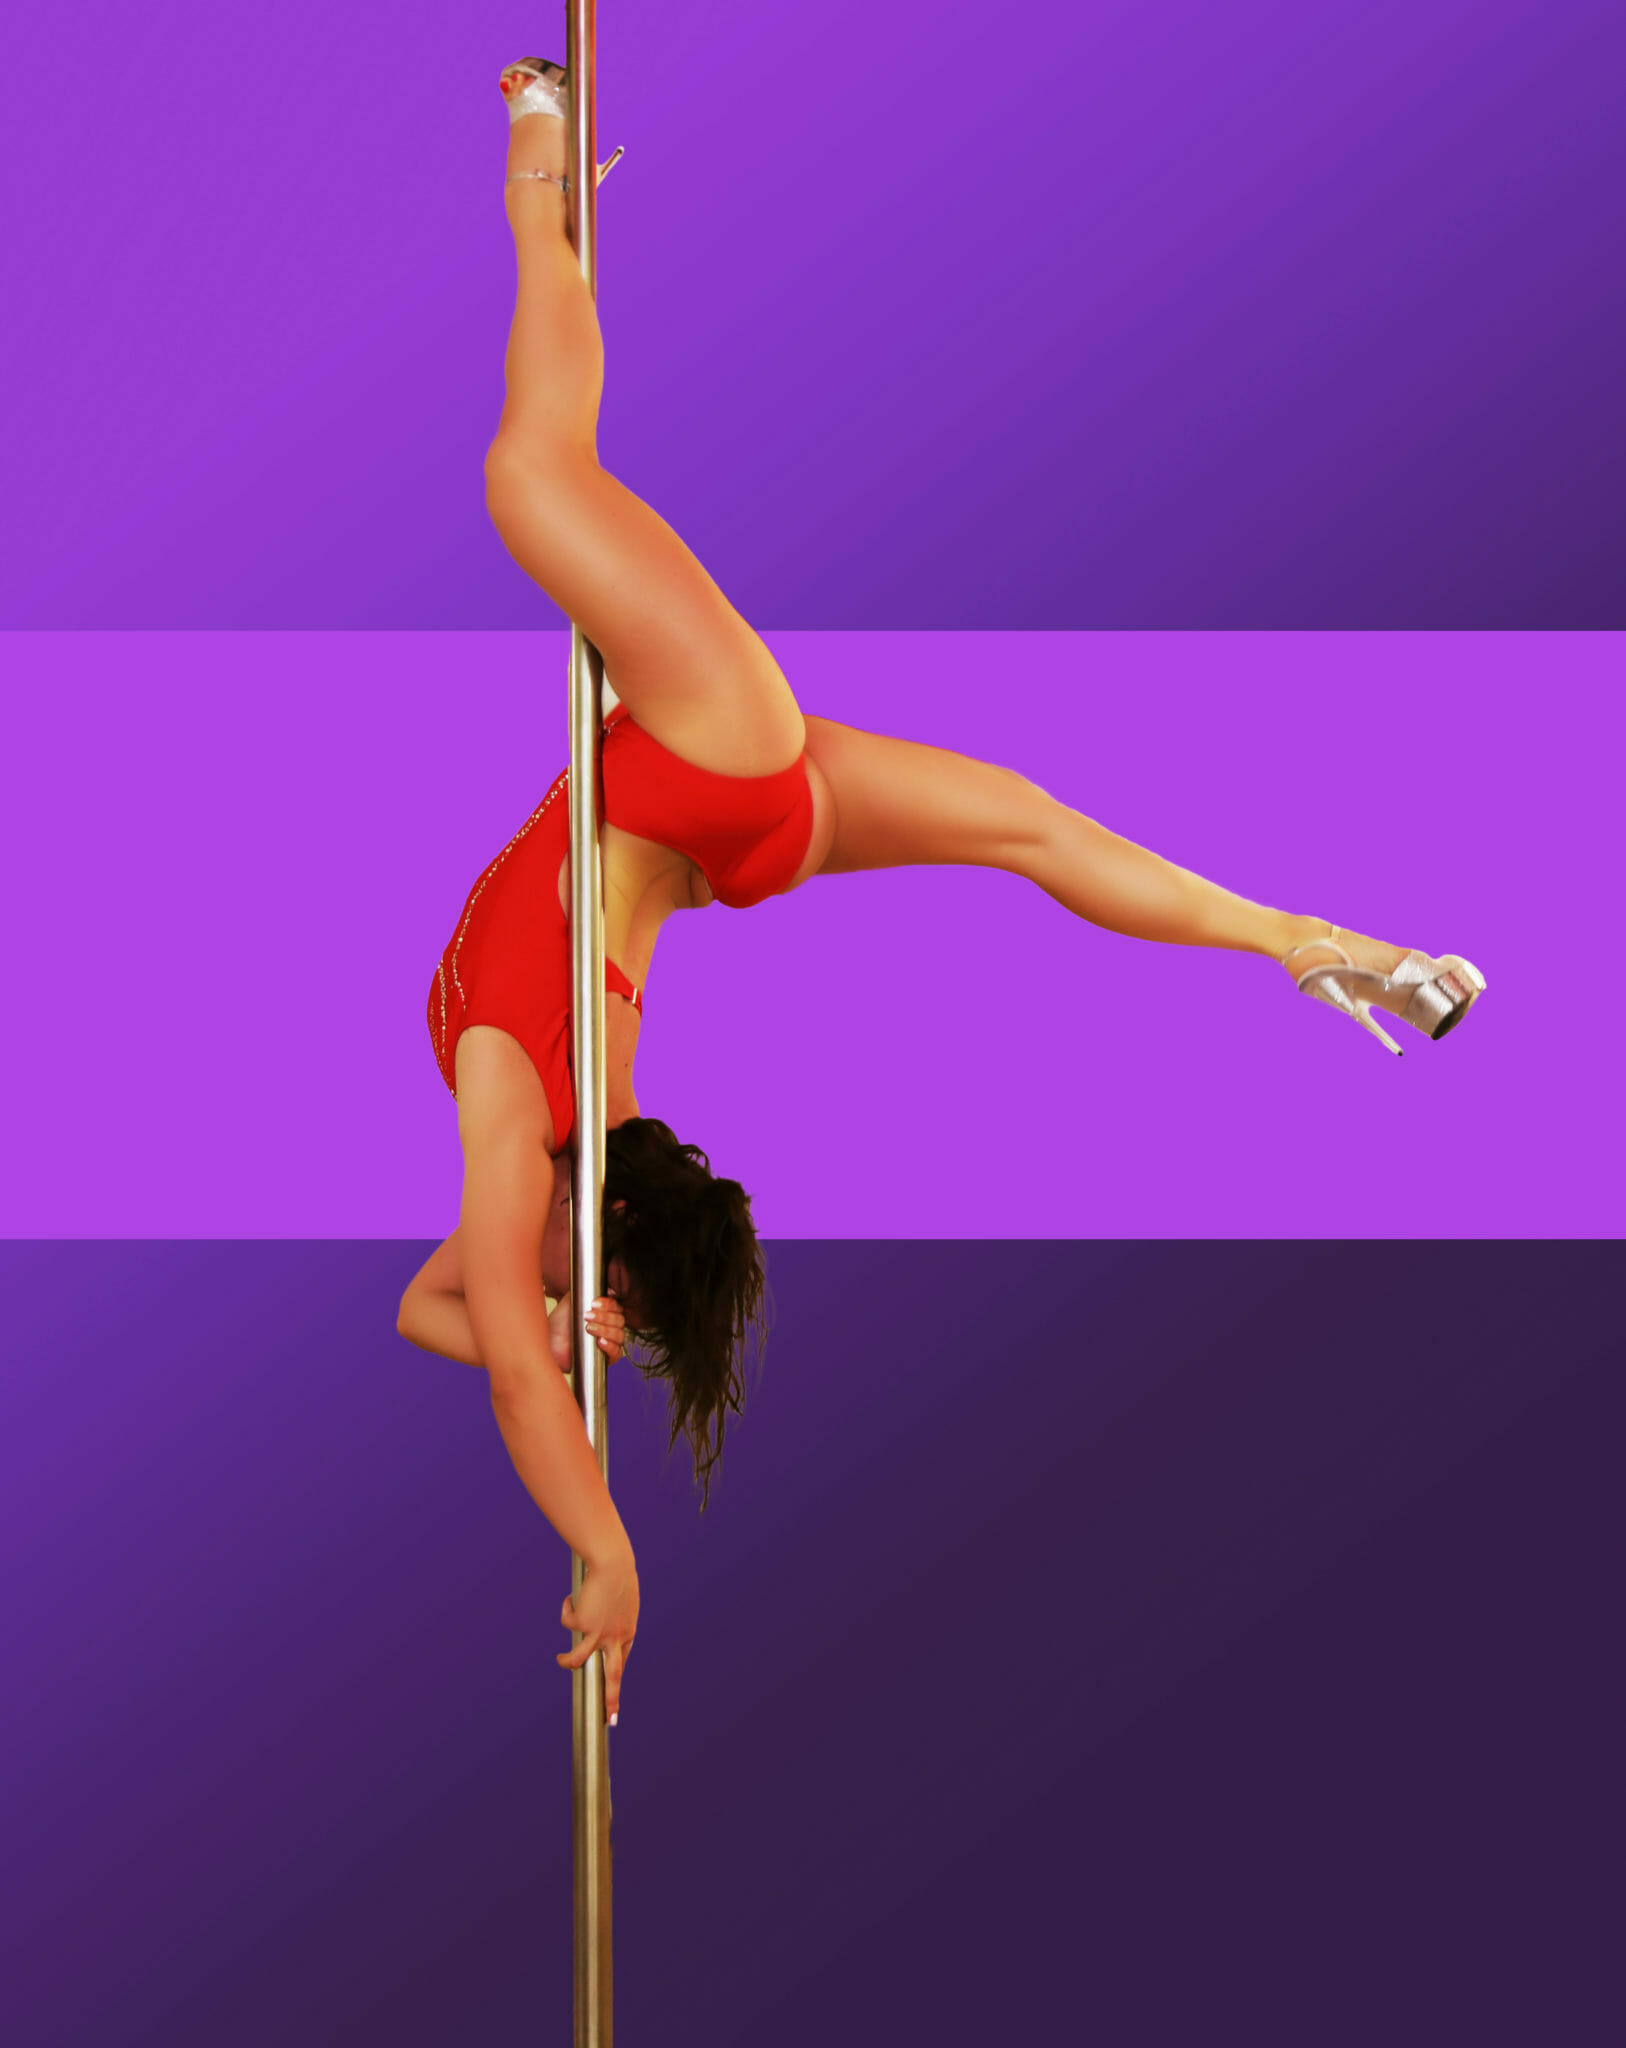 How To Prepare For A Pole Dance Performance?